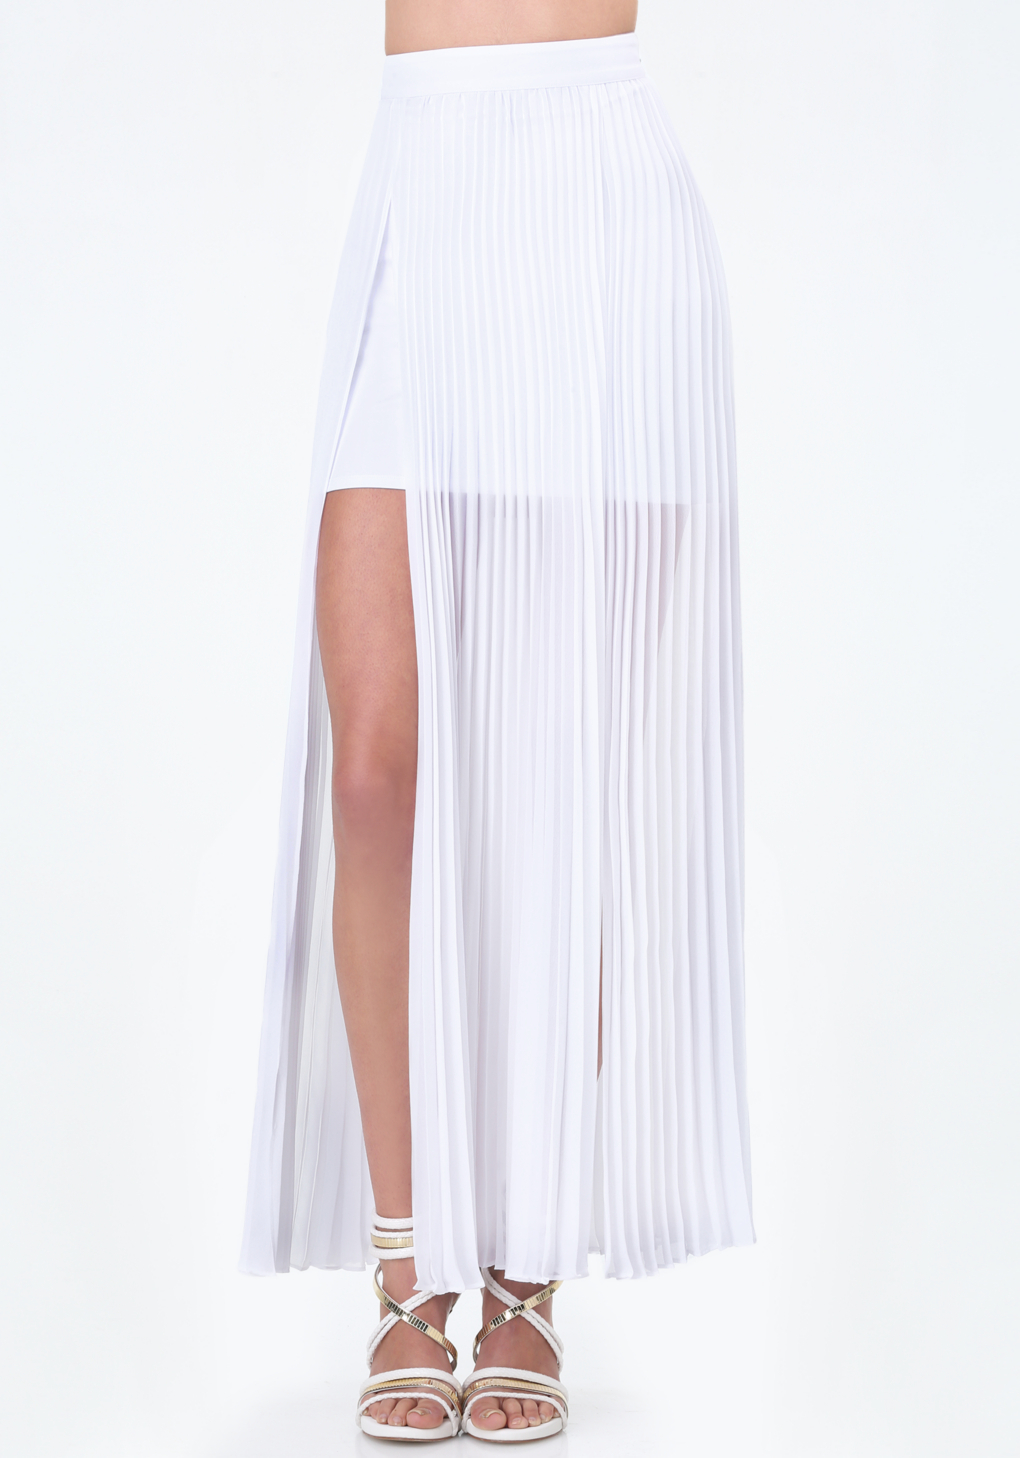 Bebe Pleated Slit Maxi Skirt in White | Lyst